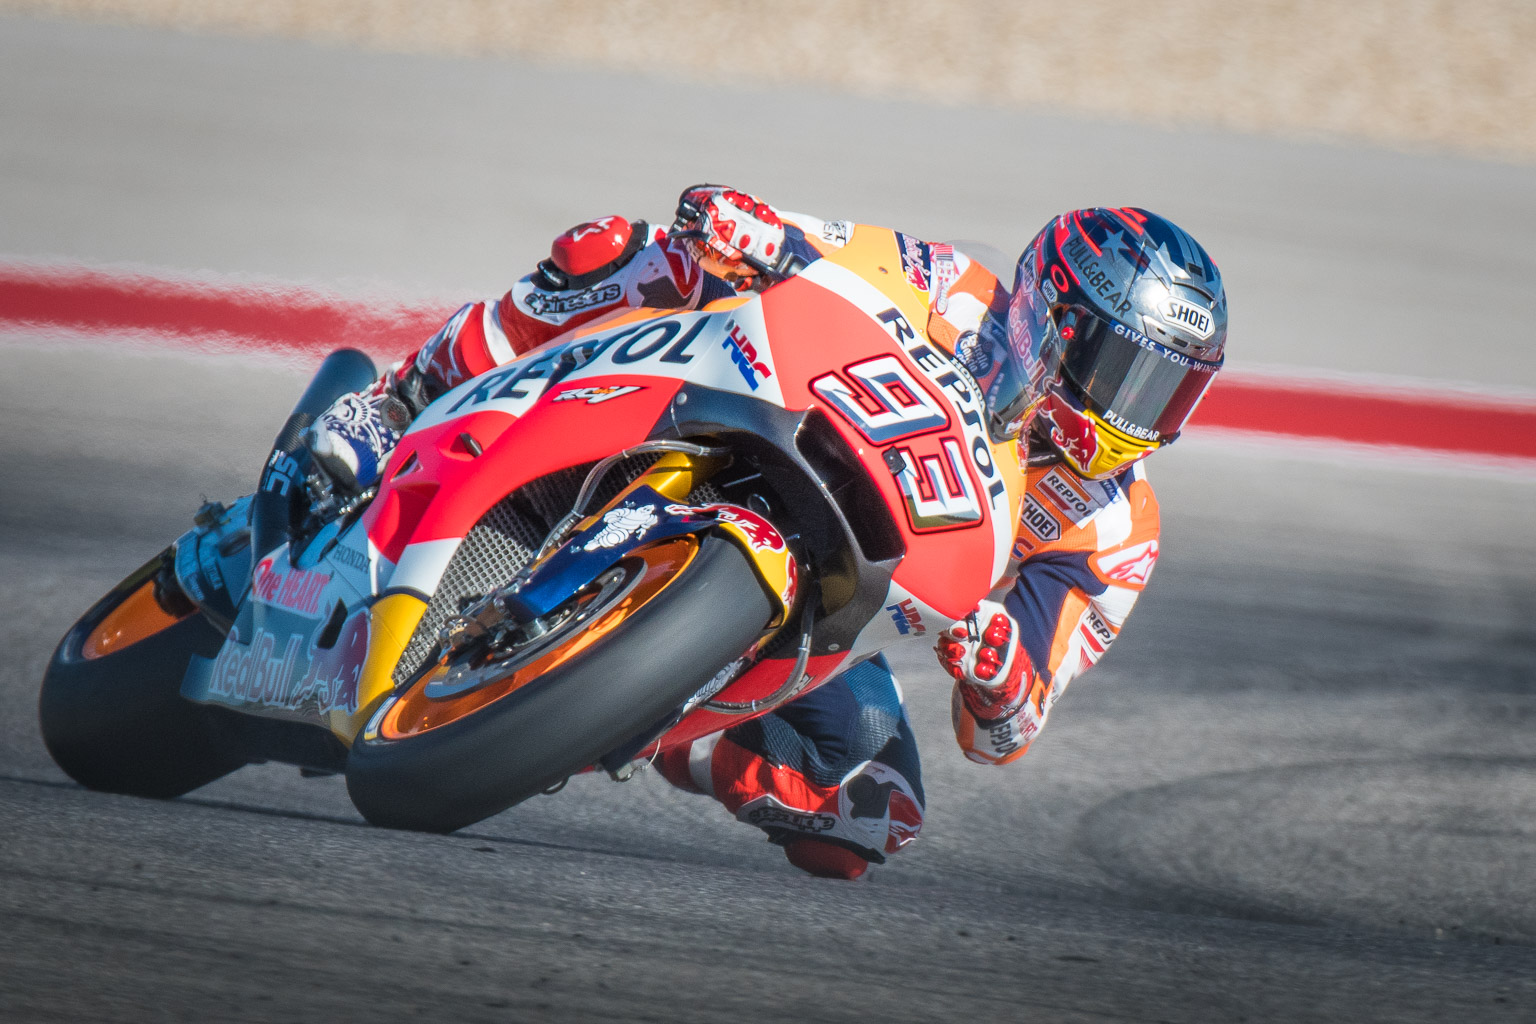 Marc Marquez, 2017 Red Bull Grand Prix of the Americas Winner ‹ Dave Wilson Photography